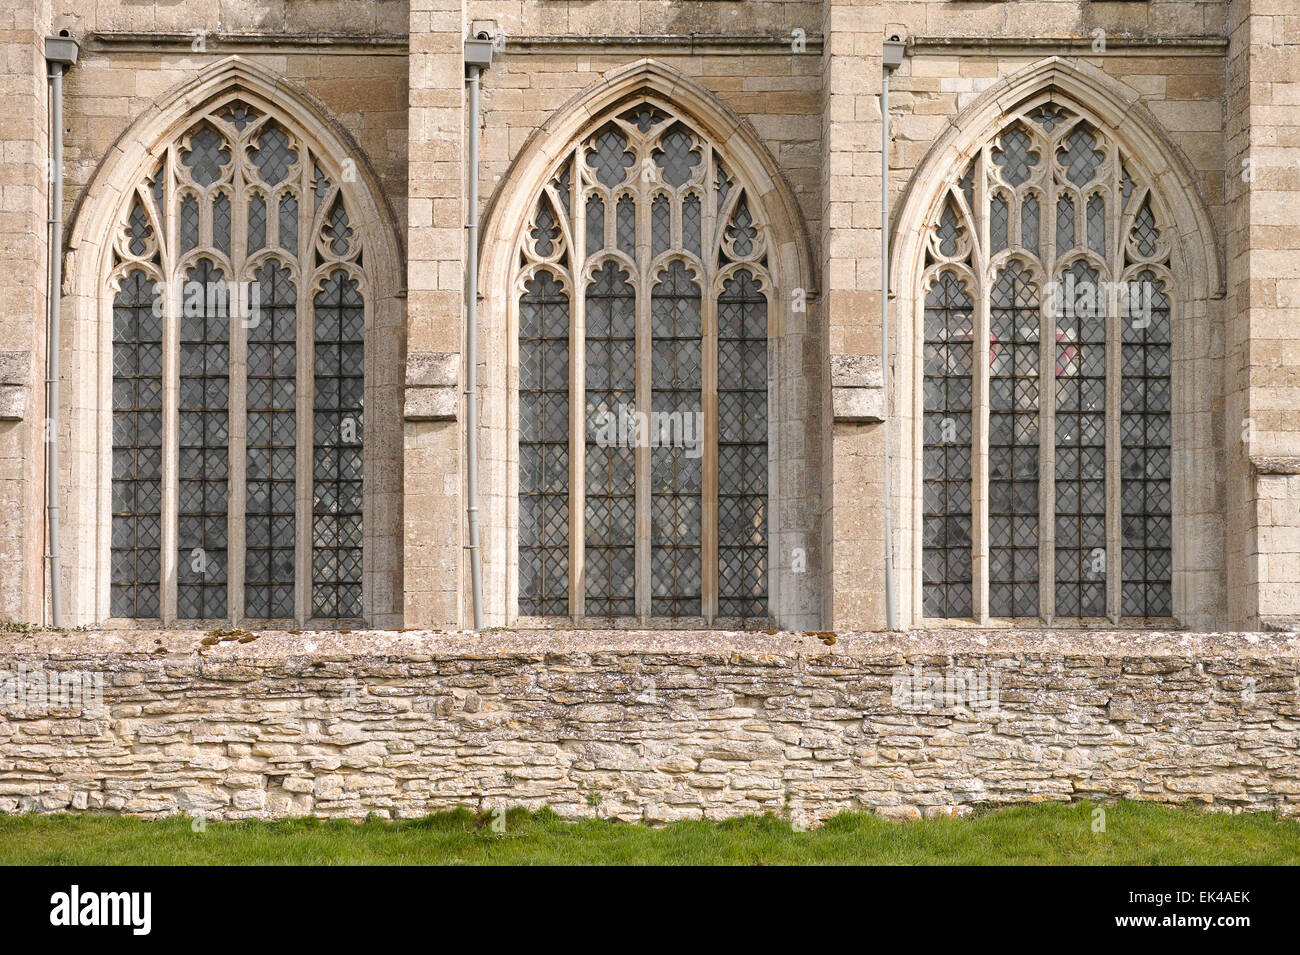 Trio of medieval windows on the southe side of the church of St Mary and All Angels, Fotheringhay, England, built - Stock Image